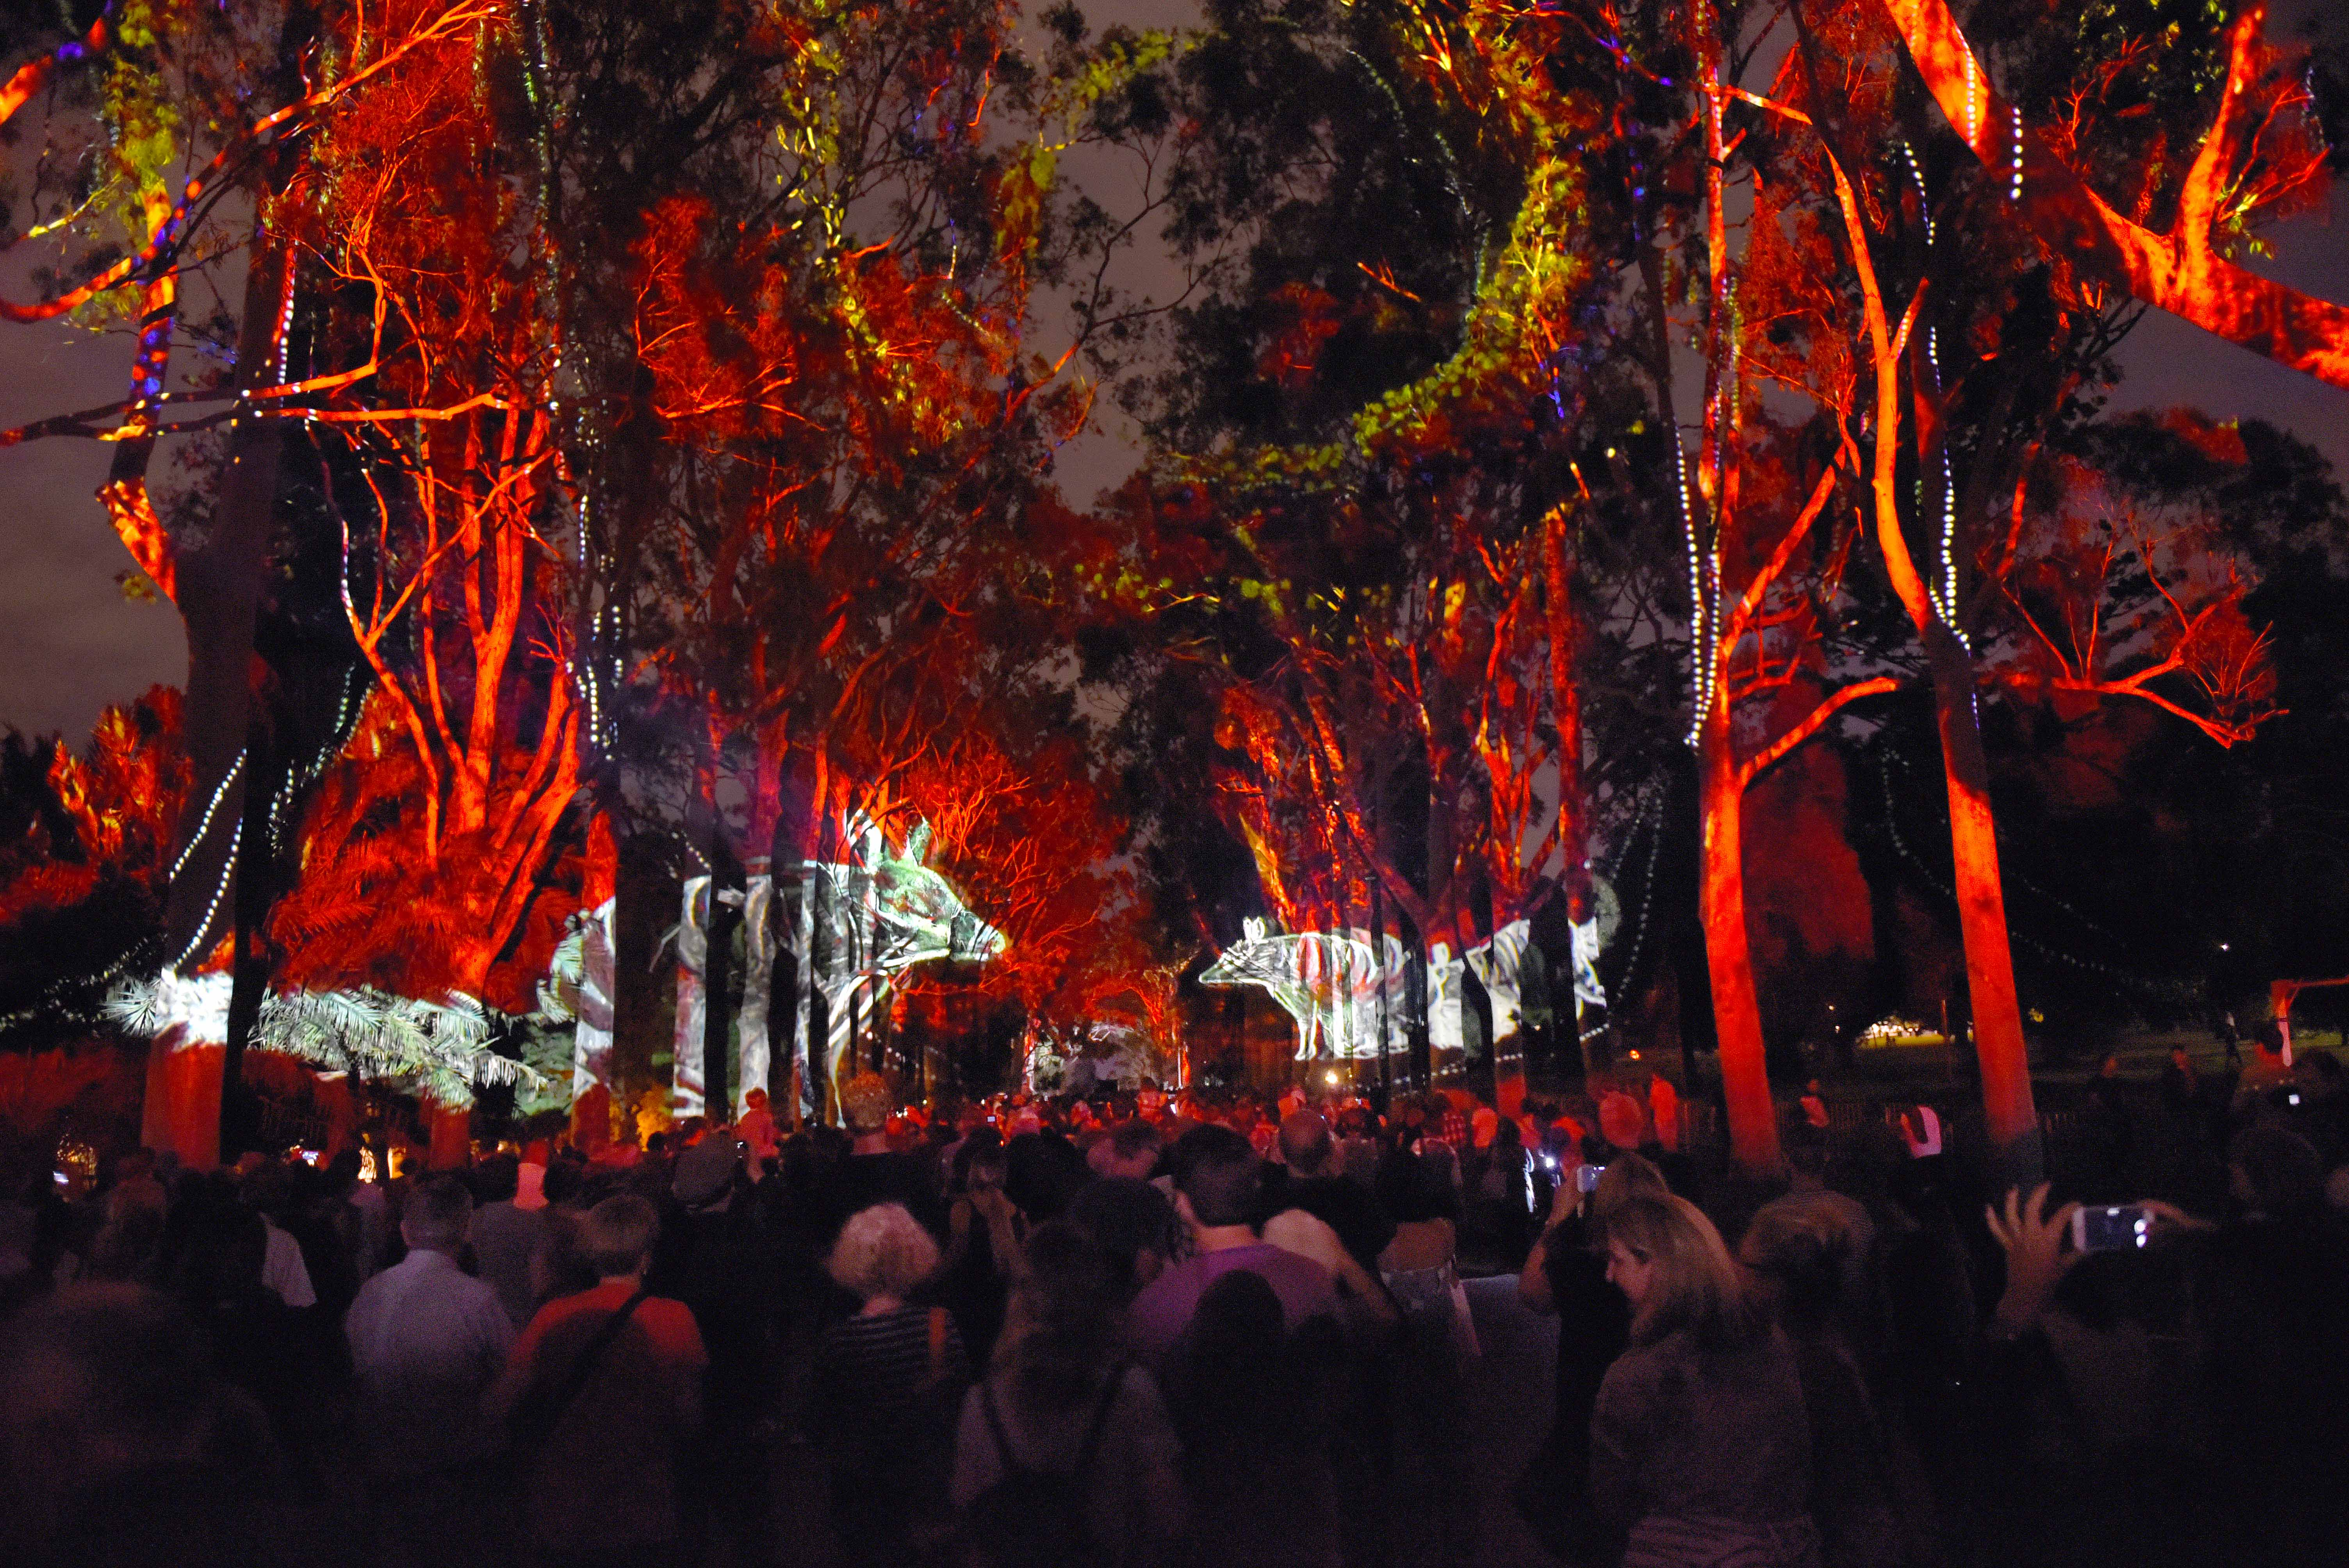 Projected lights on trees at Kings Park